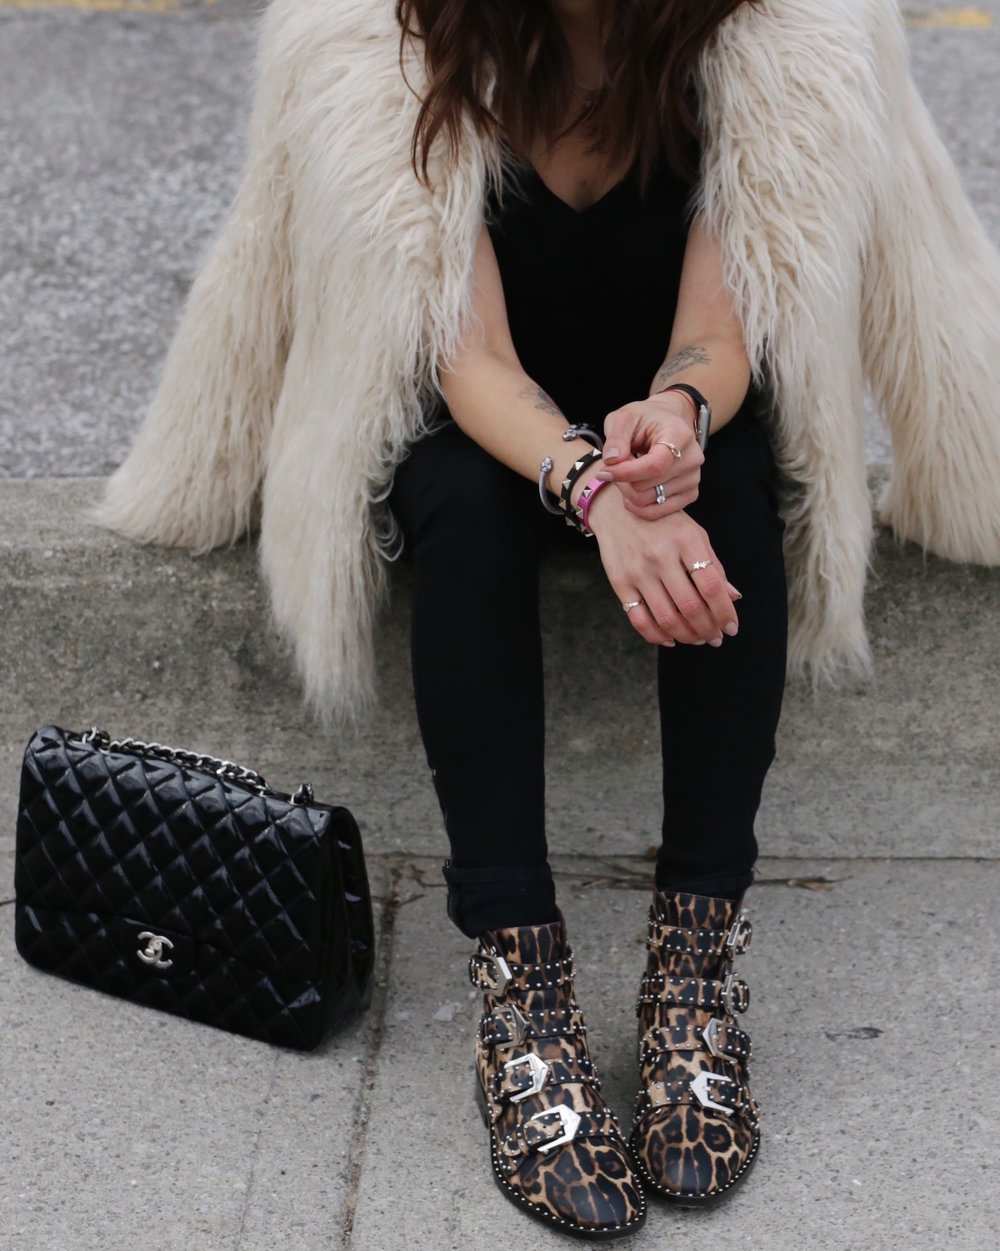 givenchy studded leopard boots, faux fur jacket and patent leather chanel bag - woahstyle.com_5616.JPG